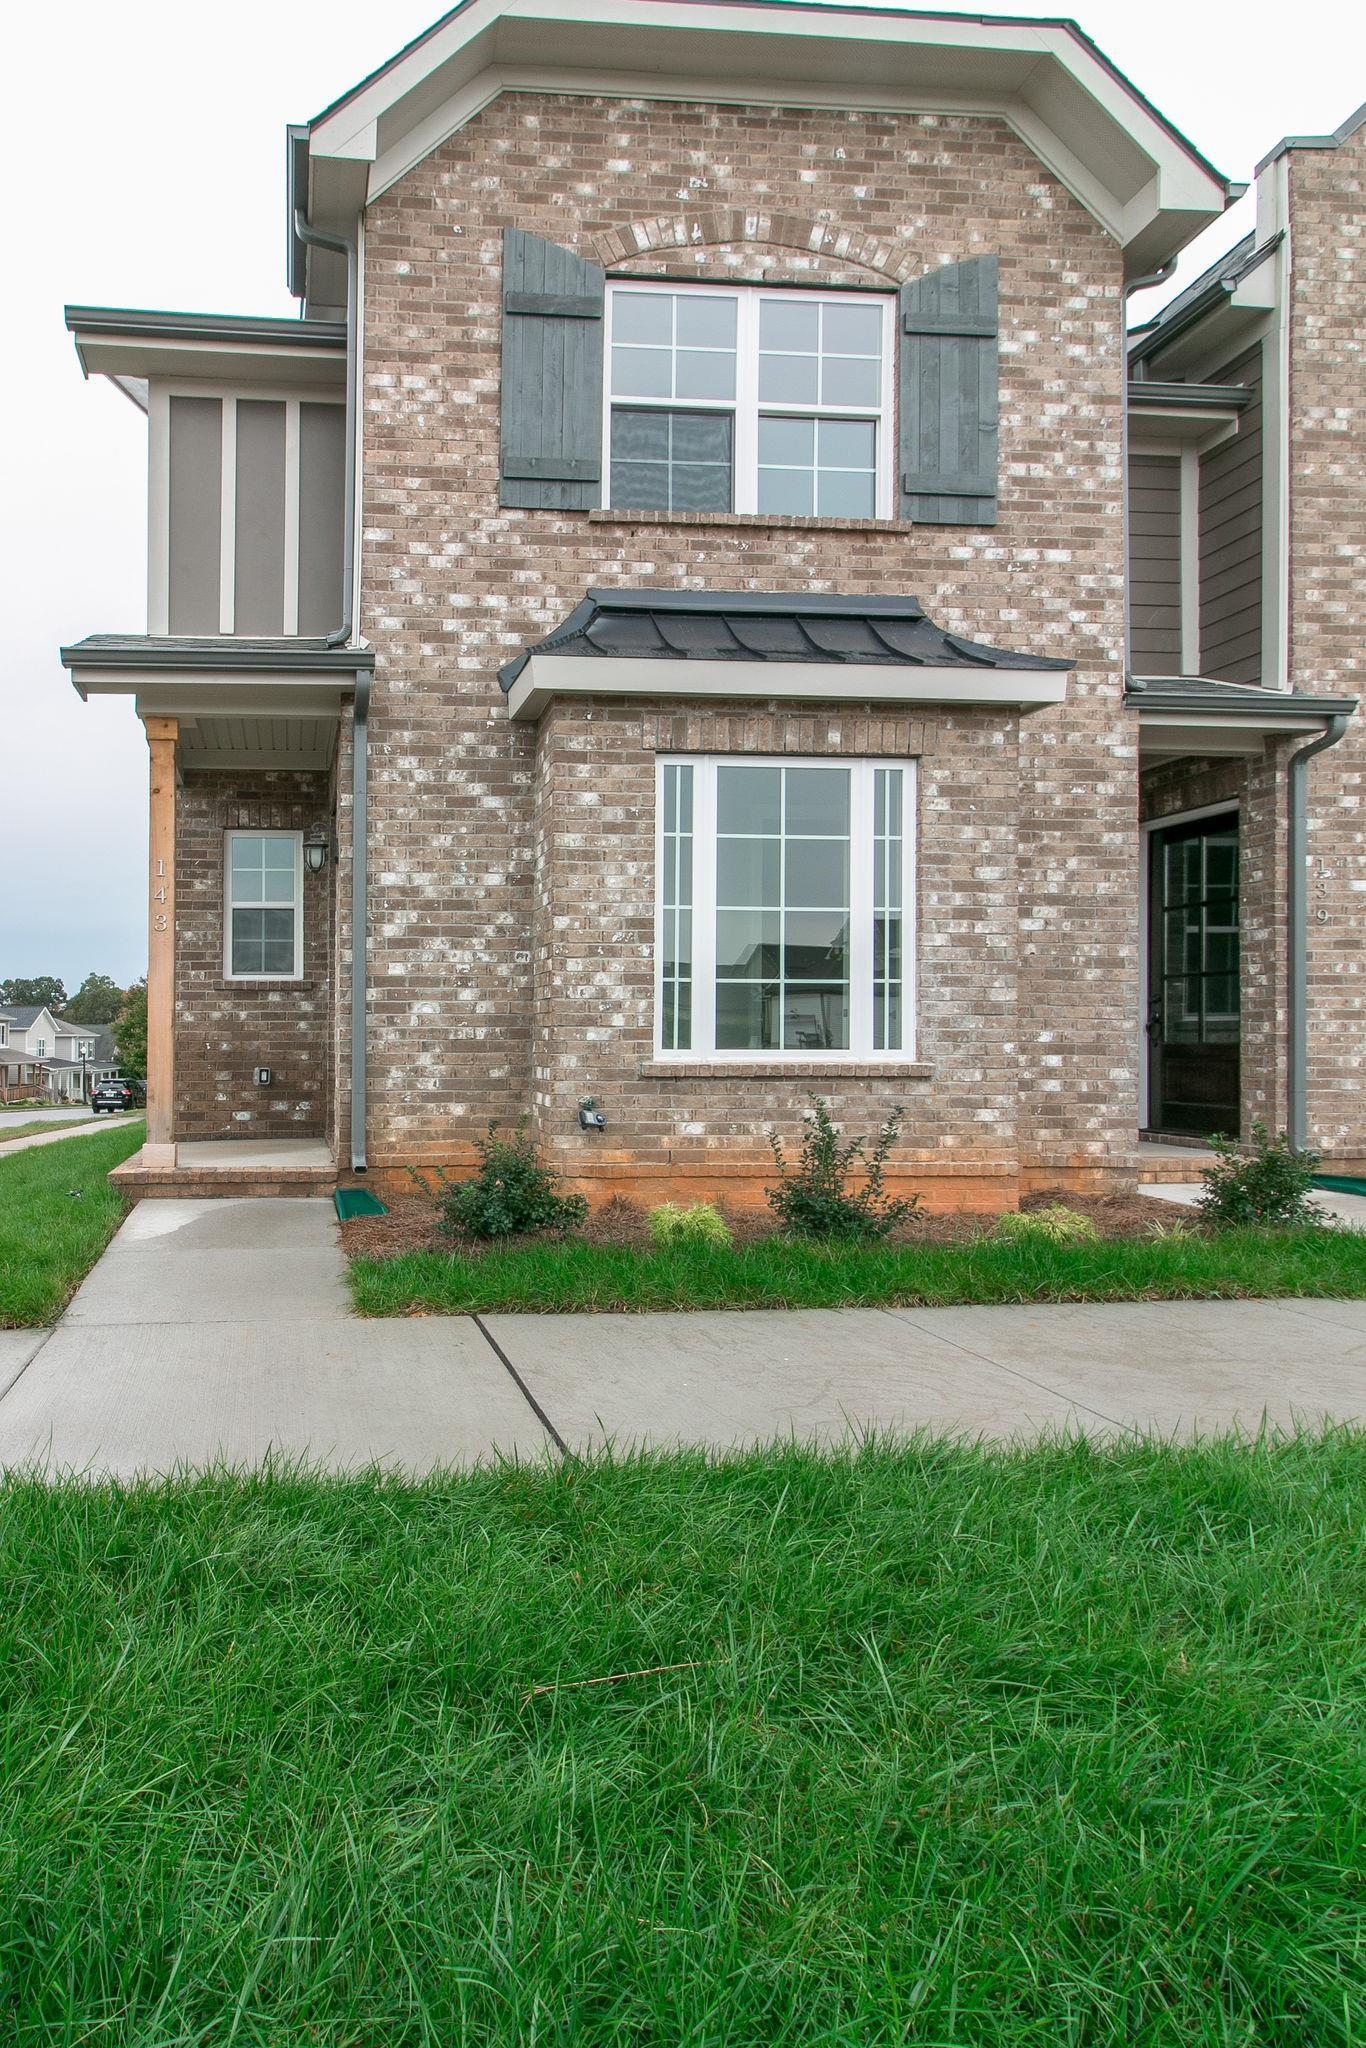 137 Bellagio Villas Dr Lot 14, Spring Hill, TN 37174 - Spring Hill, TN real estate listing